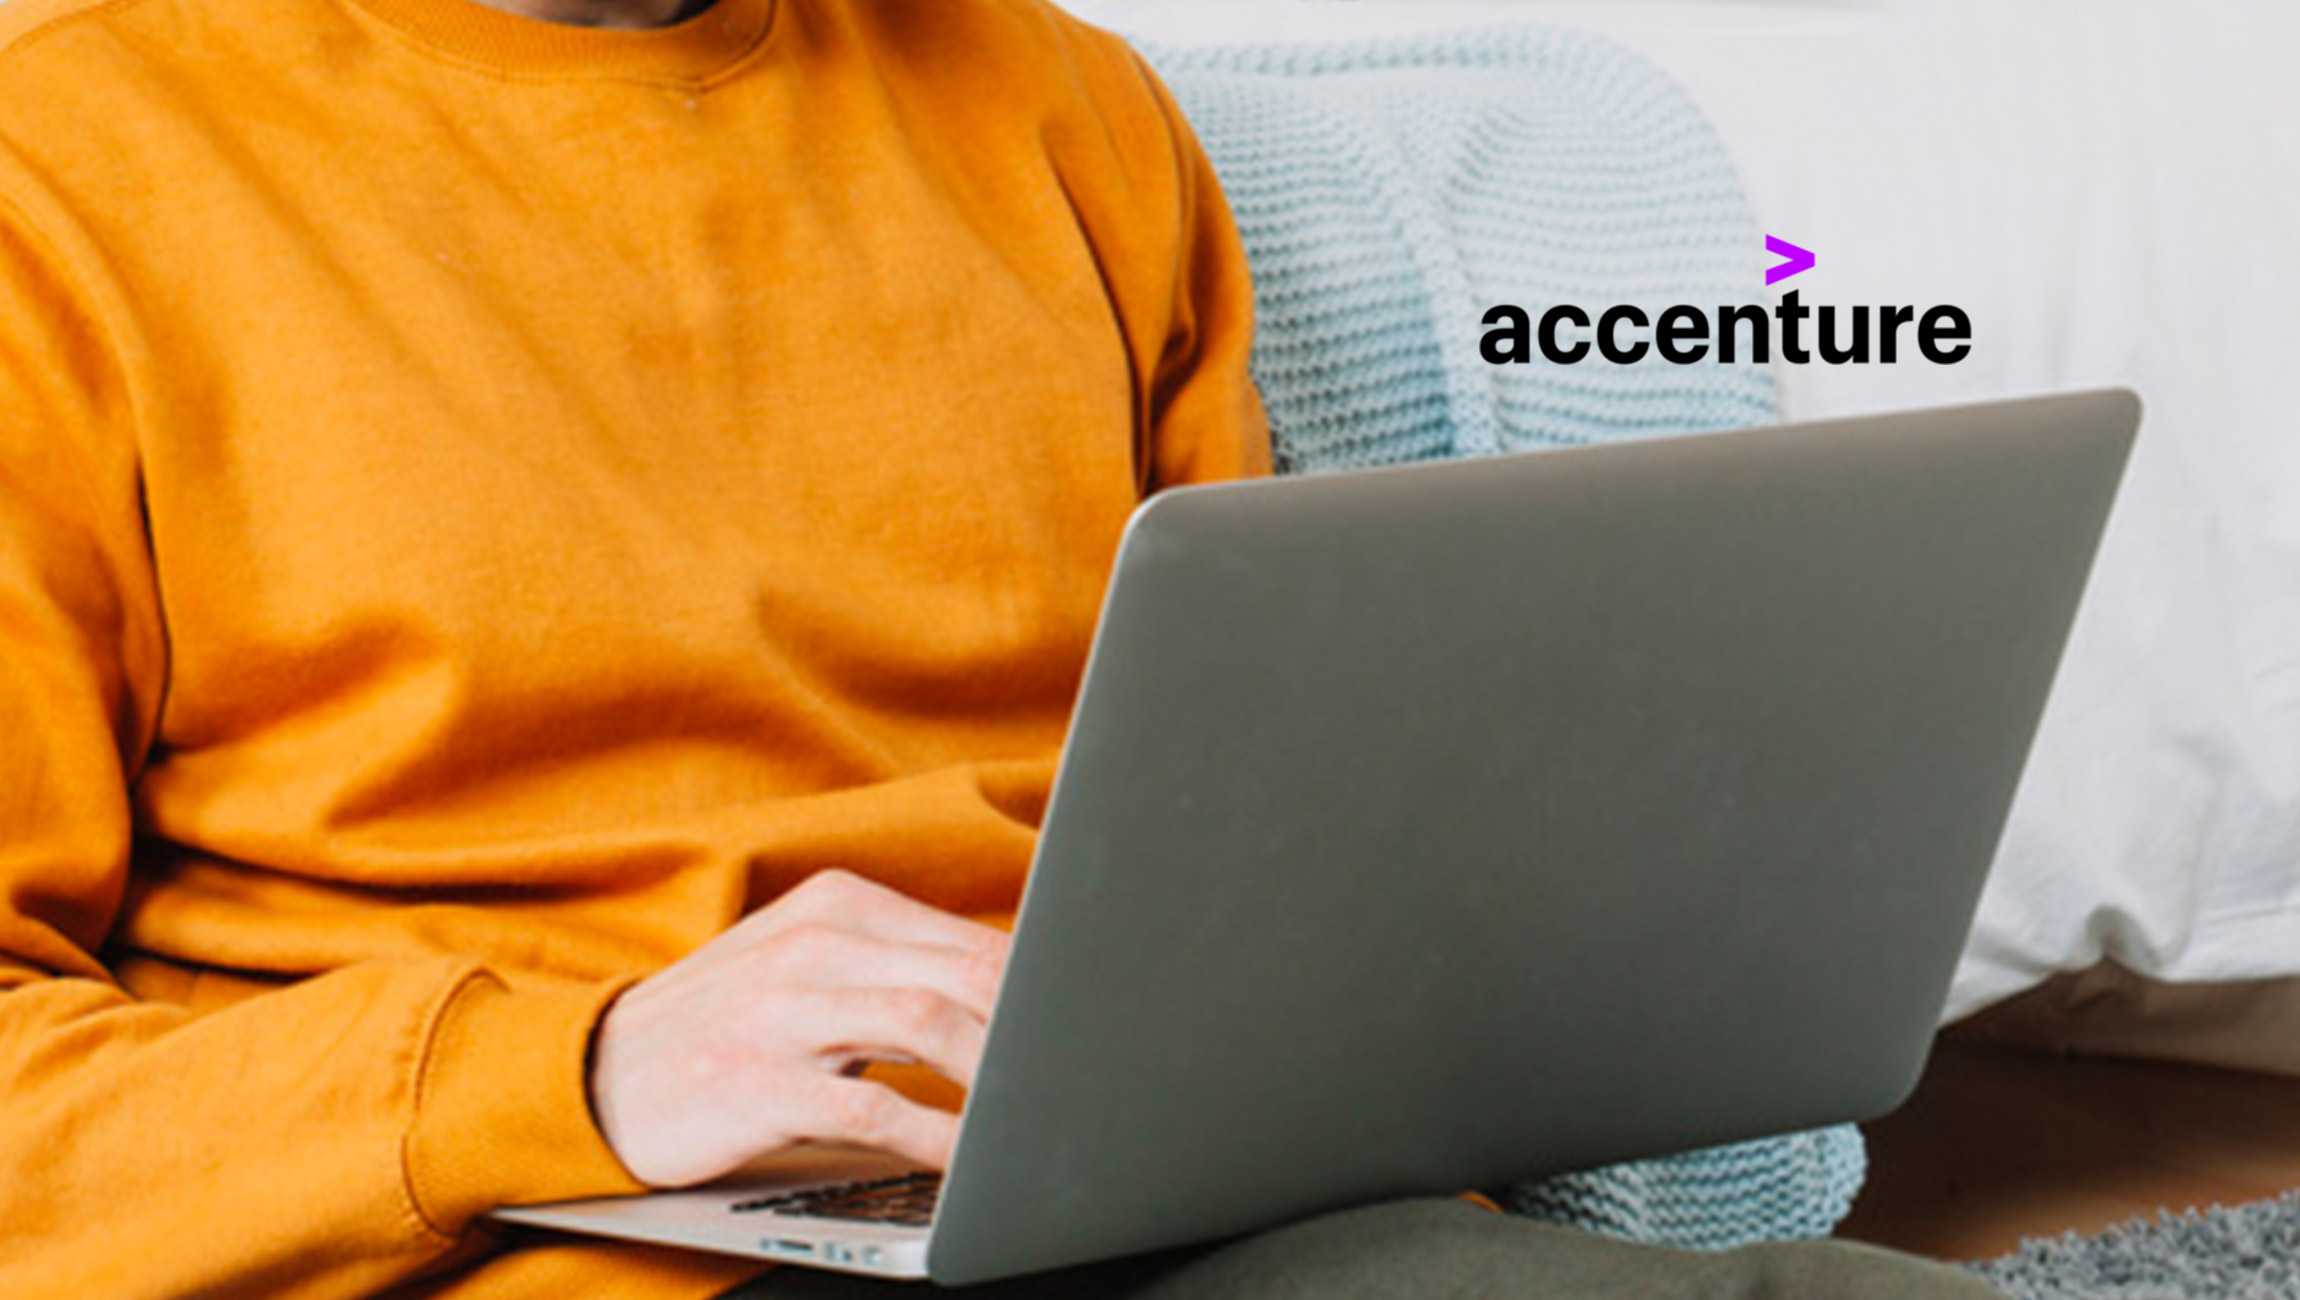 Accenture to Expand Industry X.0 Capabilities with Acquisition of Zielpuls to Create Smart Products and Services for Carmakers